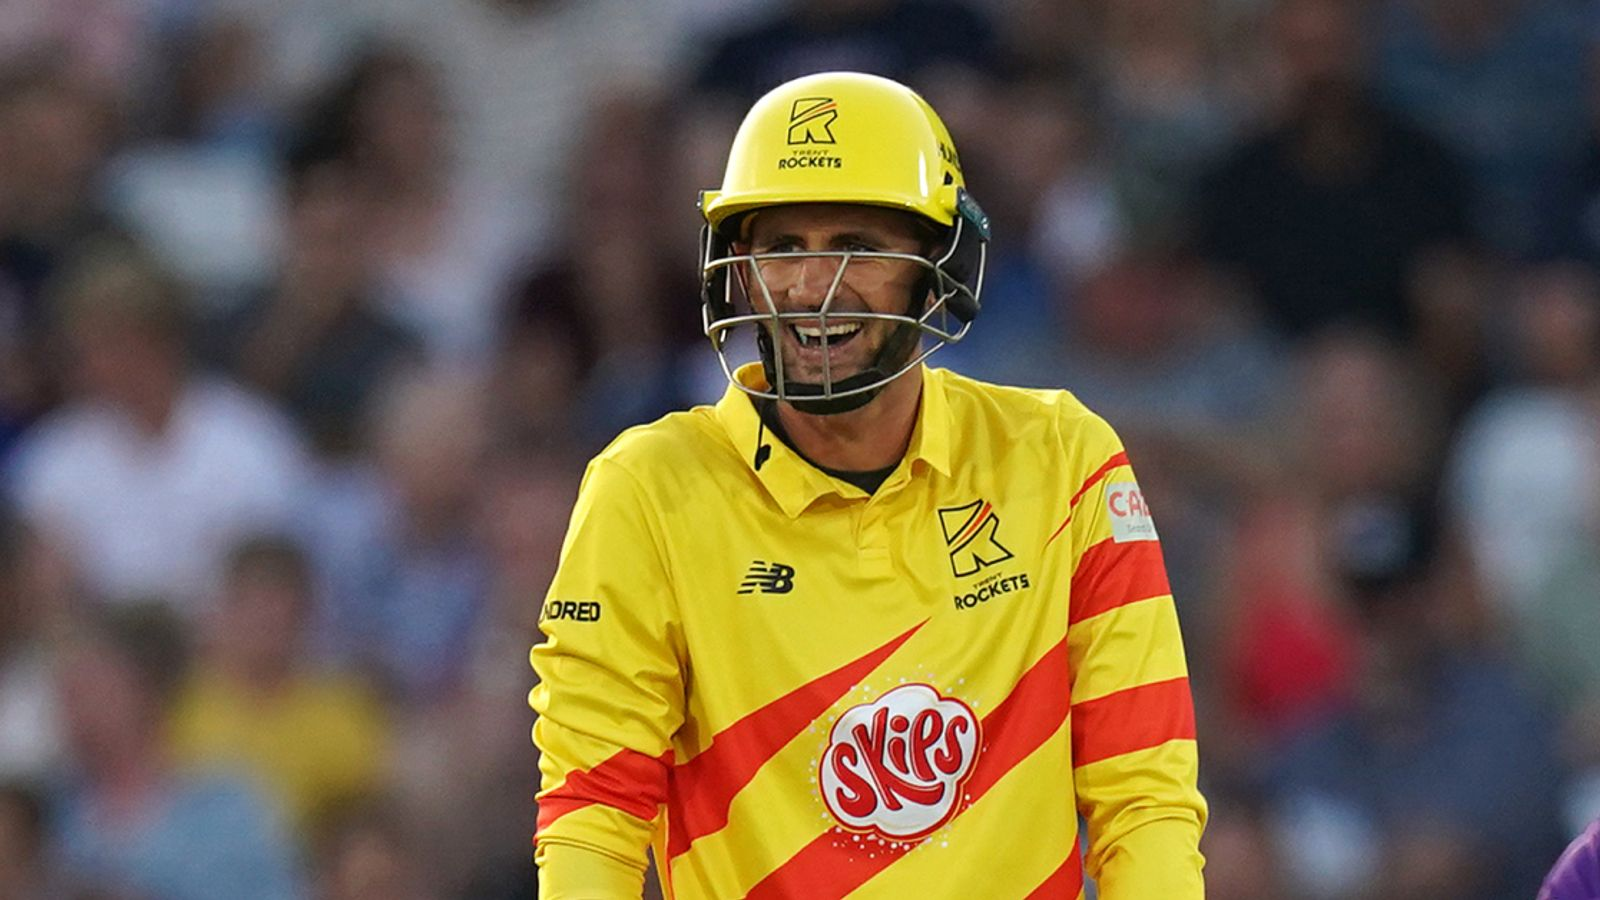 The Hundred: Alex Hales leads dramatic Trent Rockets fightback to beat Northern Superchargers